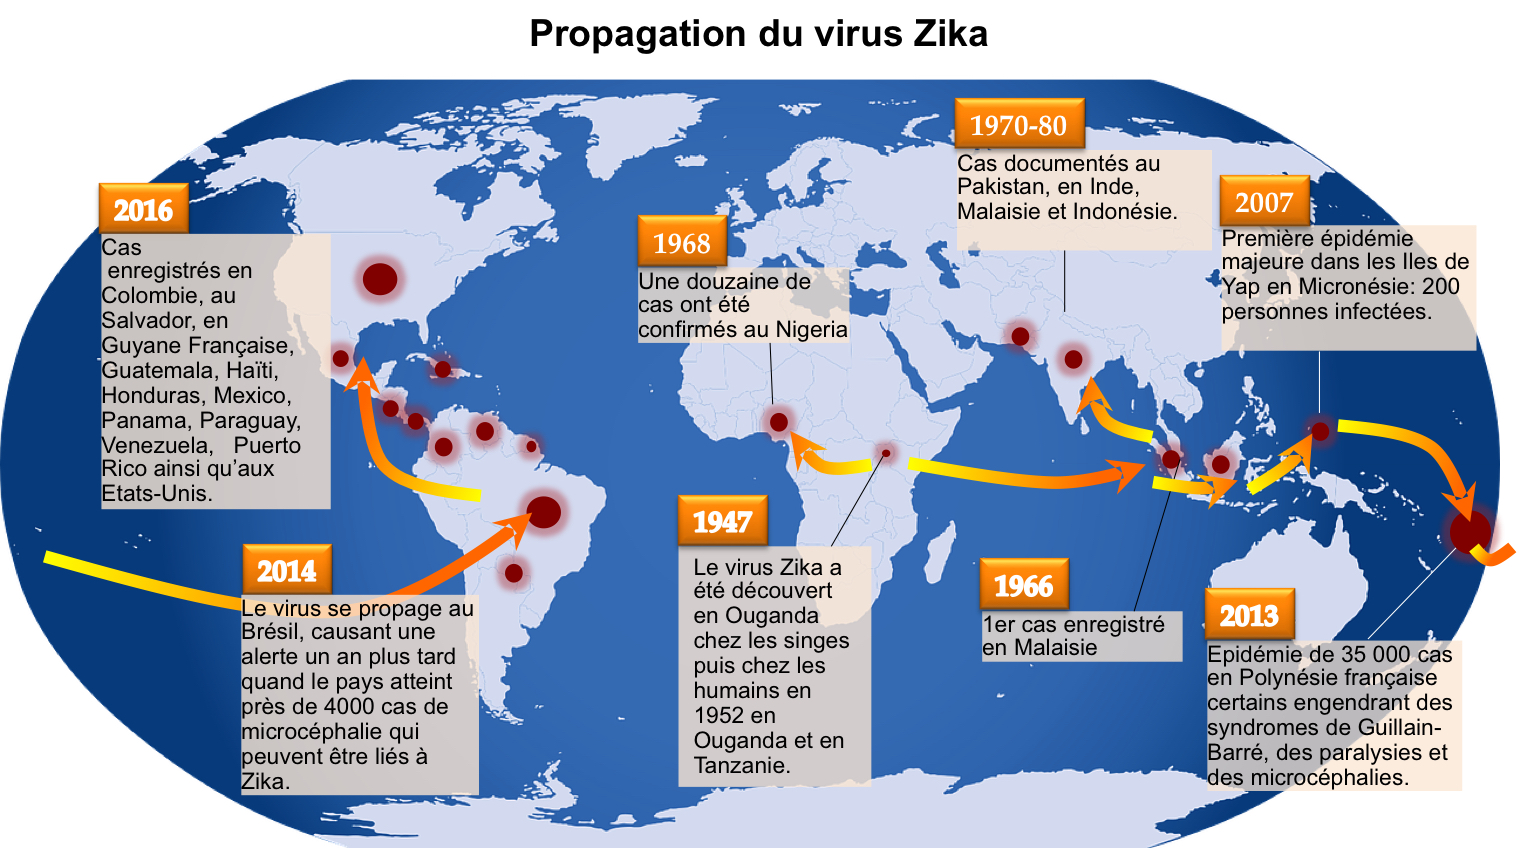 Figure-1-Propagation-du-virus-Zika-copie